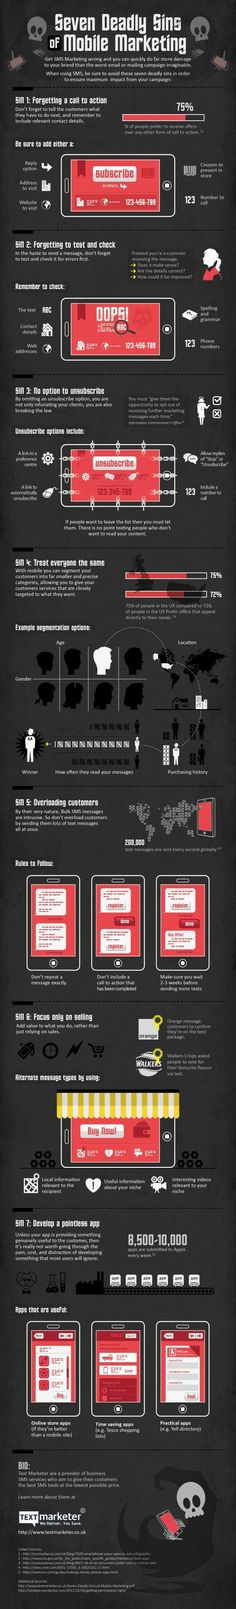 http://wanelo.com/p/3878283/just-out-how-to-make-money-with-cell-phones-and-mobile-marketing - 7 Deadly Sins Of Mobile Marketing